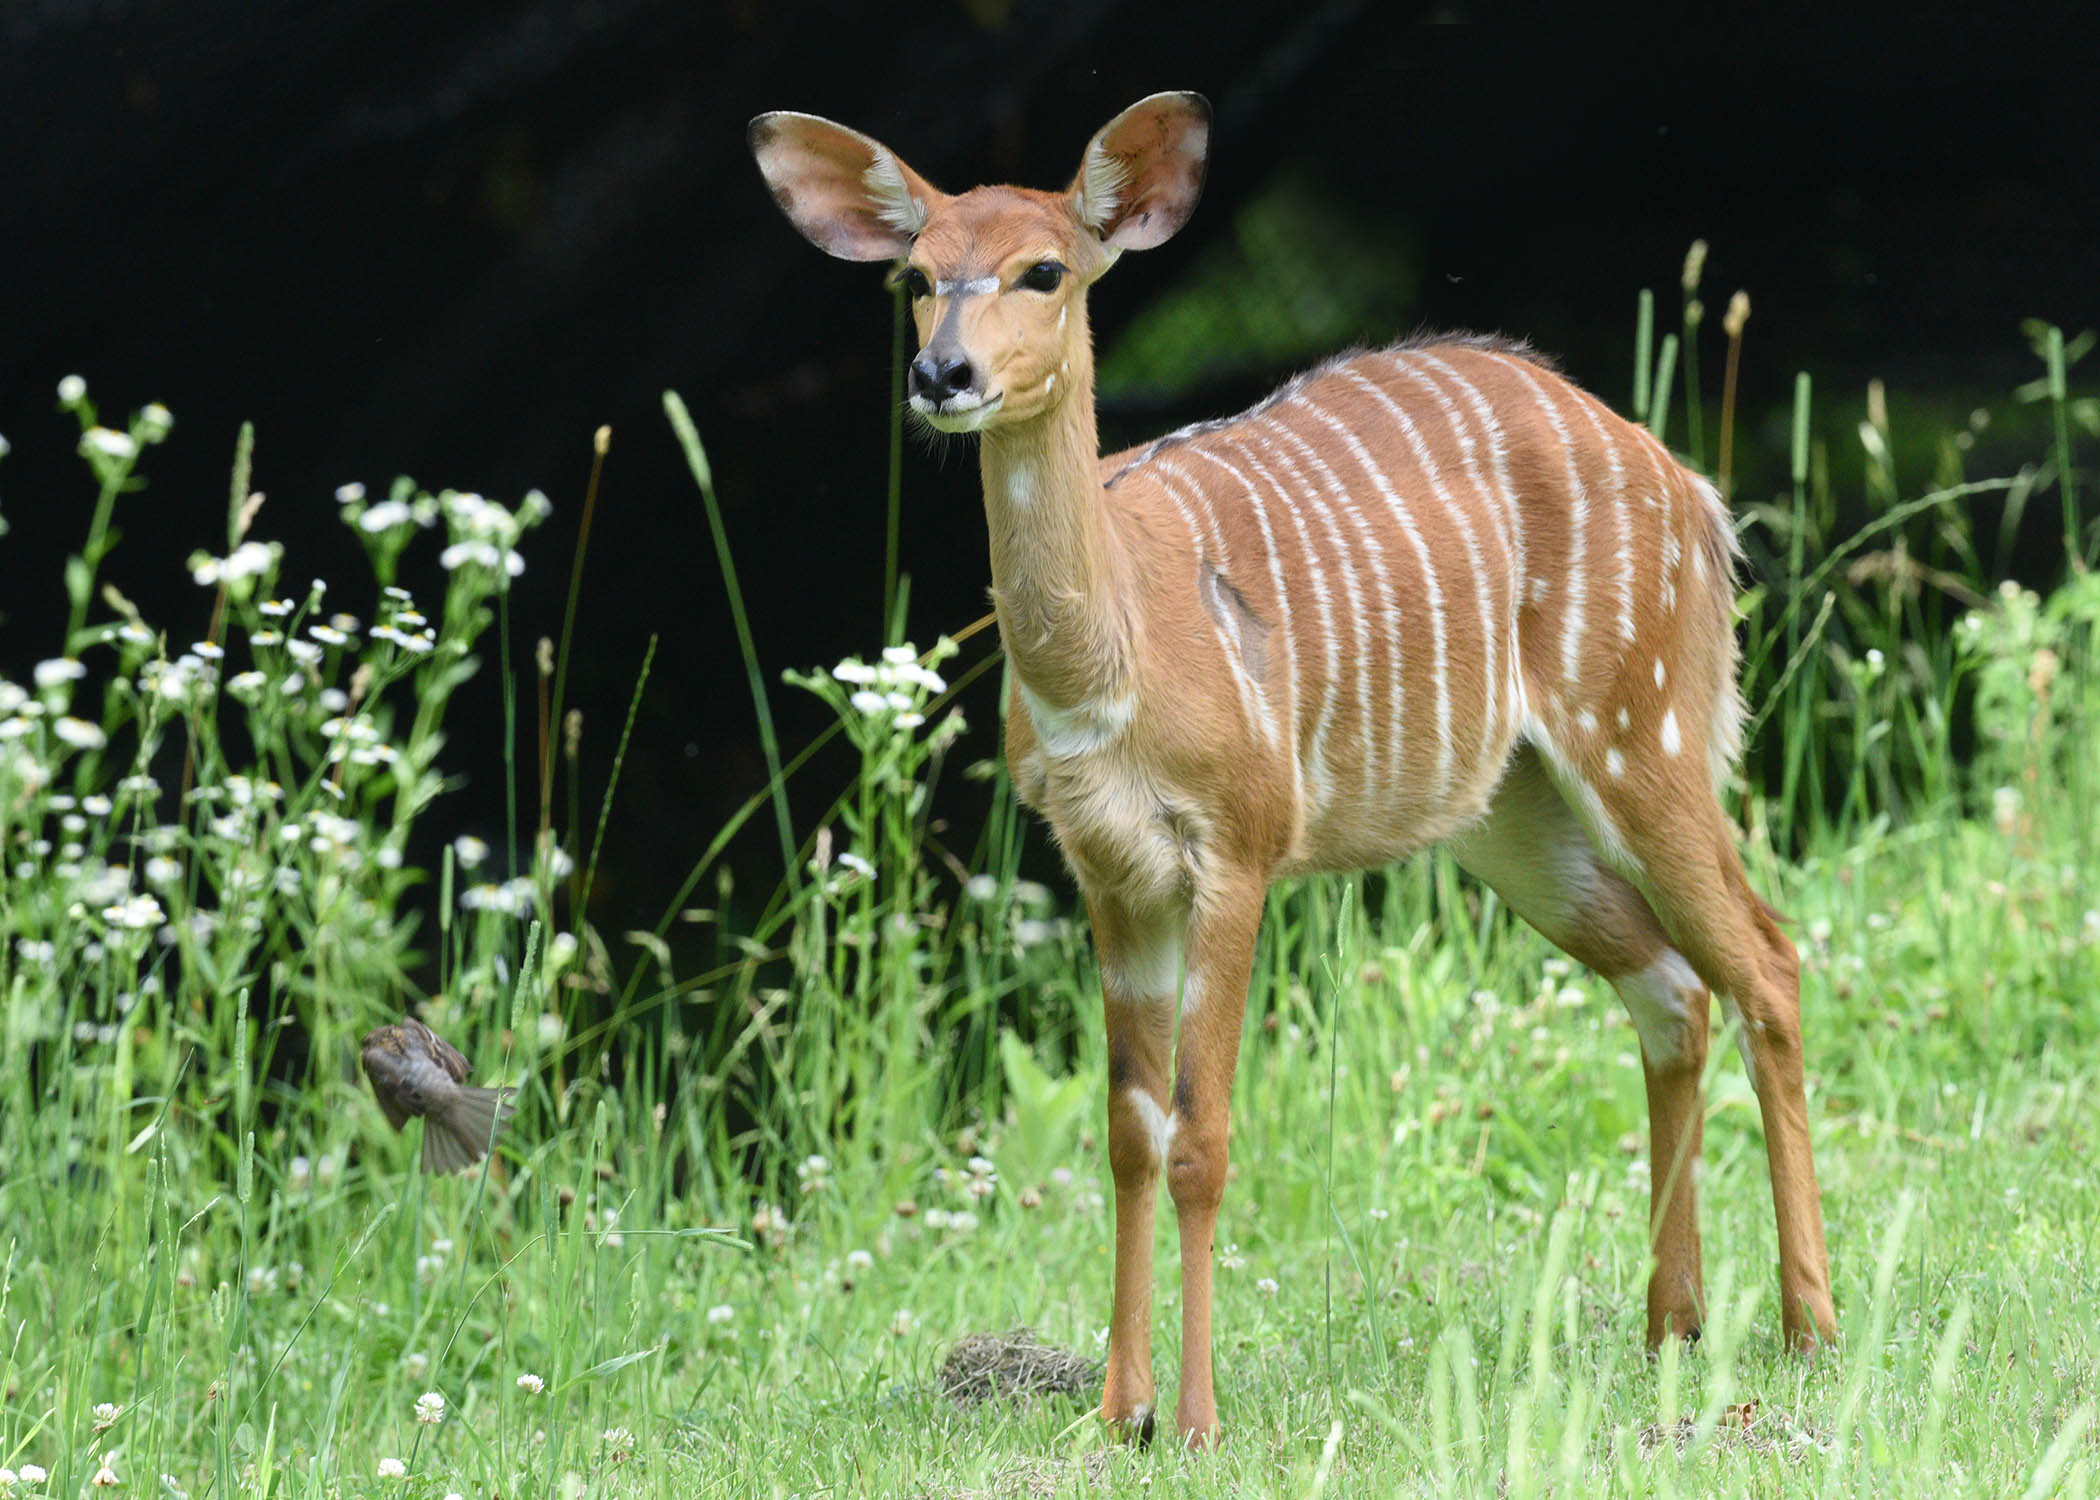 Nyala, a medium sized antelope, are acclimating to their new home at Brookfield Zoo  (photo courtesy of Brookfield Zoo)